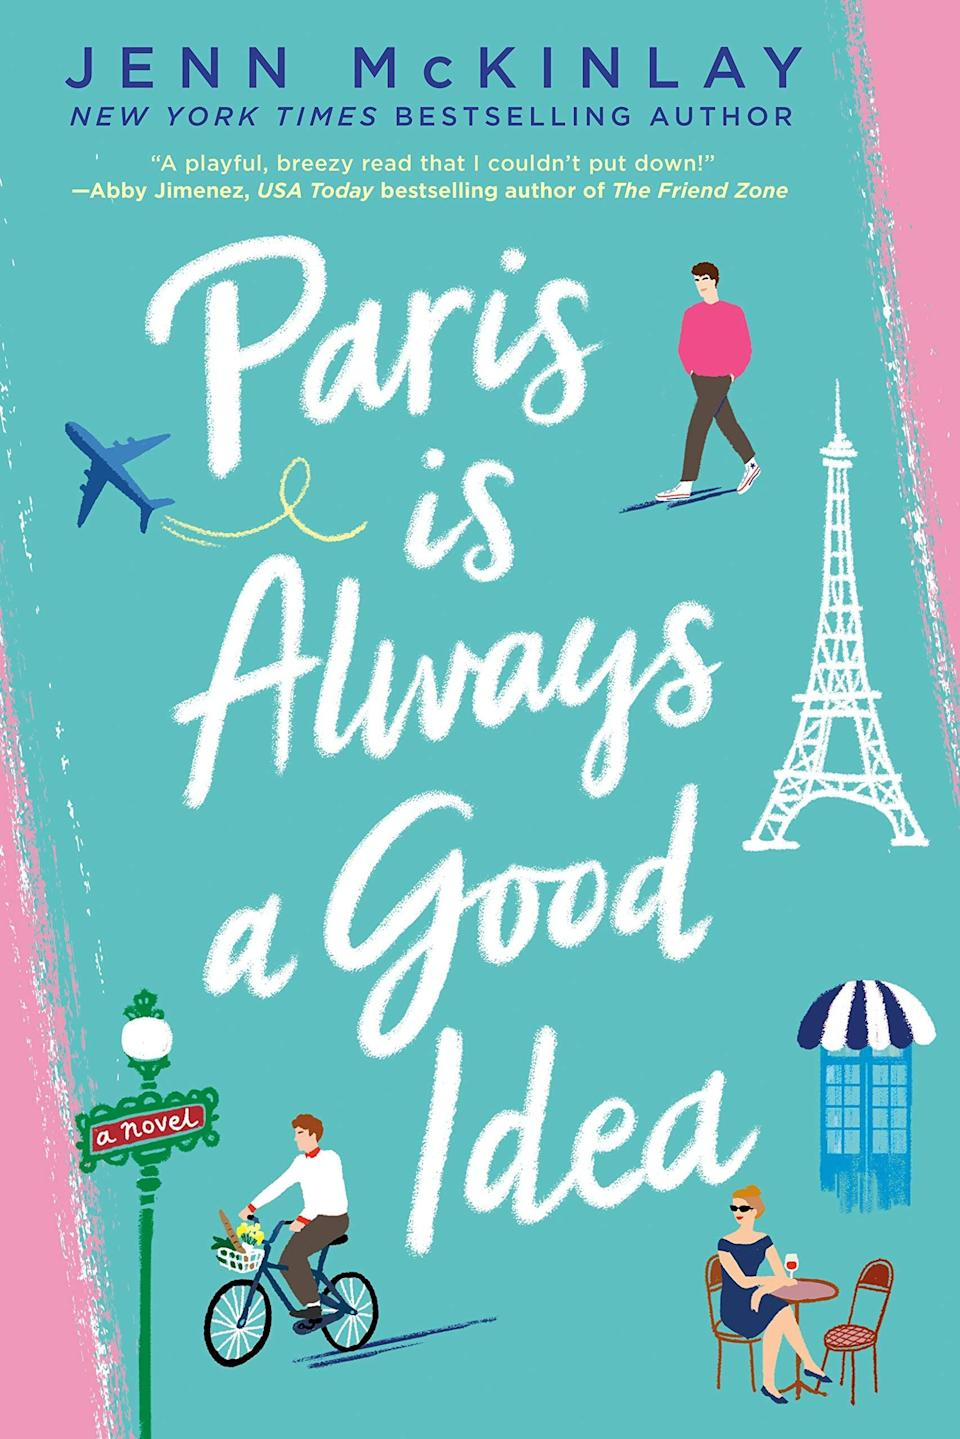 <p><span><strong>Paris Is Always a Good Idea</strong> by Jenn McKinlay</span> ($14) follows Chelsea as she searches for love and happiness across Europe. After her dad's sudden announcement that he's getting remarried, and her less-than-thrilled reaction, Chelsea realizes she hasn't been truly happy in years. So she leaves behind her job and annoying rival coworker and embarks on an adventure through Ireland, France, and Italy hoping to reconnect with her old self - and her former flings.</p> <p>OK, any story that takes place in the Irish countryside, Paris, and Tuscany is practically begging to be turned into a movie. There's also an empowering pole dancing lesson, a dreamy black tie-gala (complete with a haute-couture gown), and a swoon-worthy kiss atop the Eiffel Tower - in other words, cinematic gold!</p>